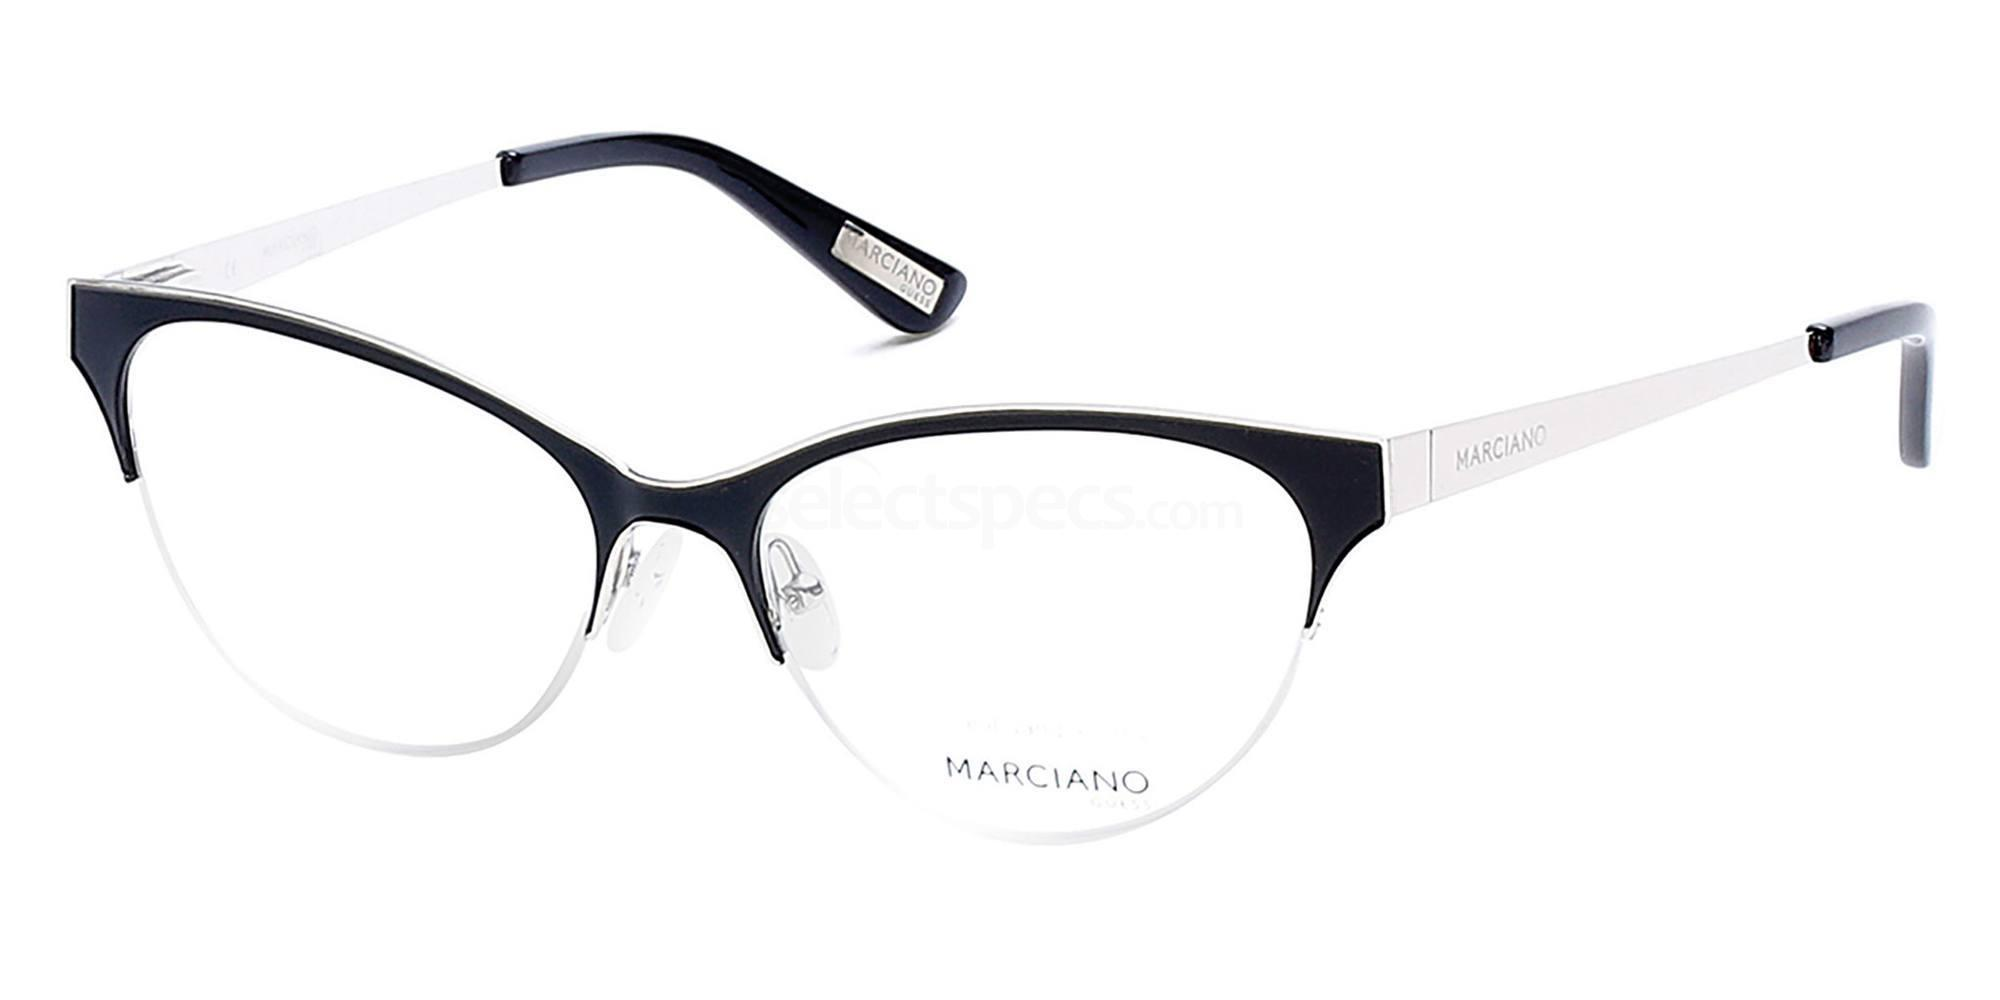 001 GM0277 Glasses, Guess by Marciano